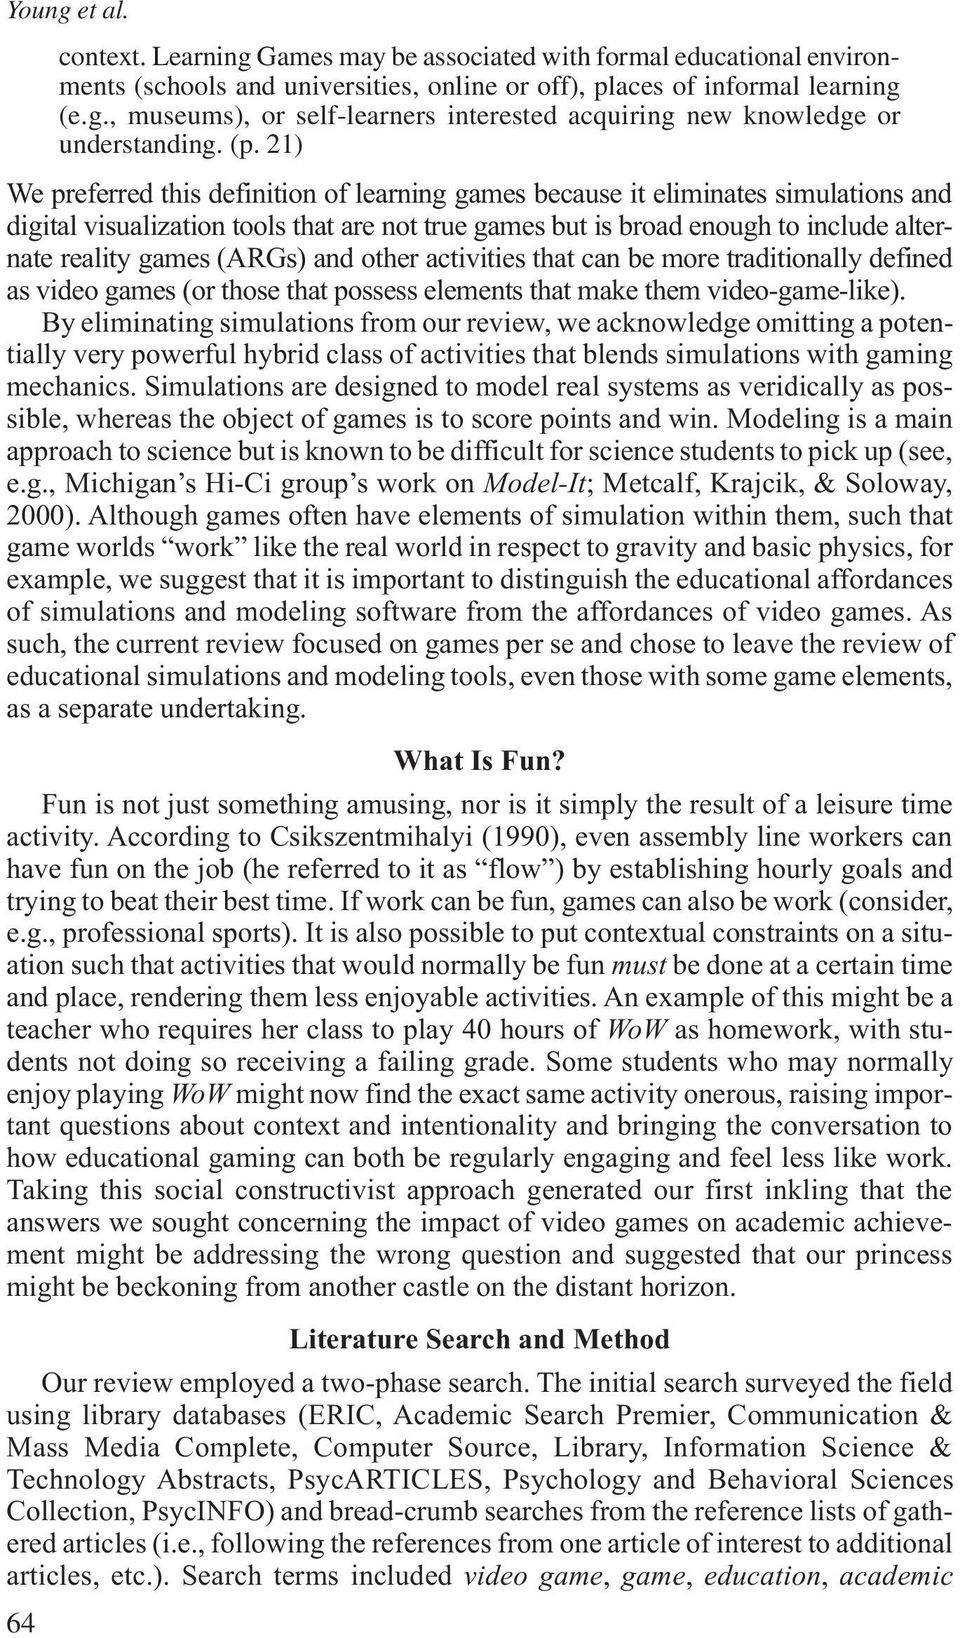 (ARGs) and other activities that can be more traditionally defined as video games (or those that possess elements that make them video-game-like).